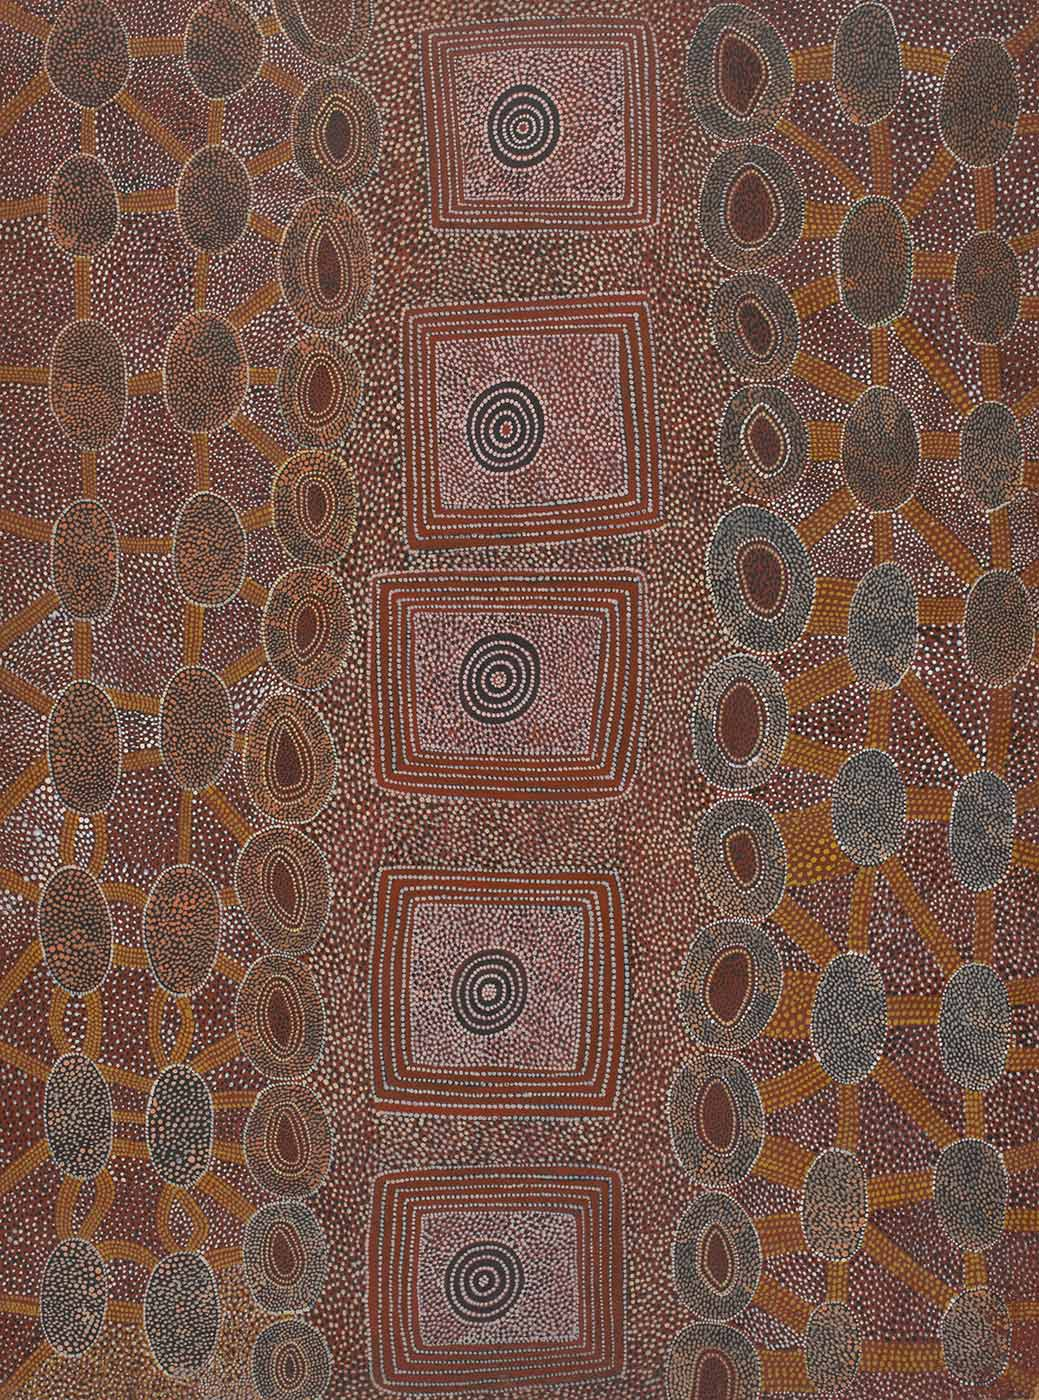 Aboriginal painting in ochre tones with a series of connected circles on either side and a central row of circles inside squaares - click to view larger image